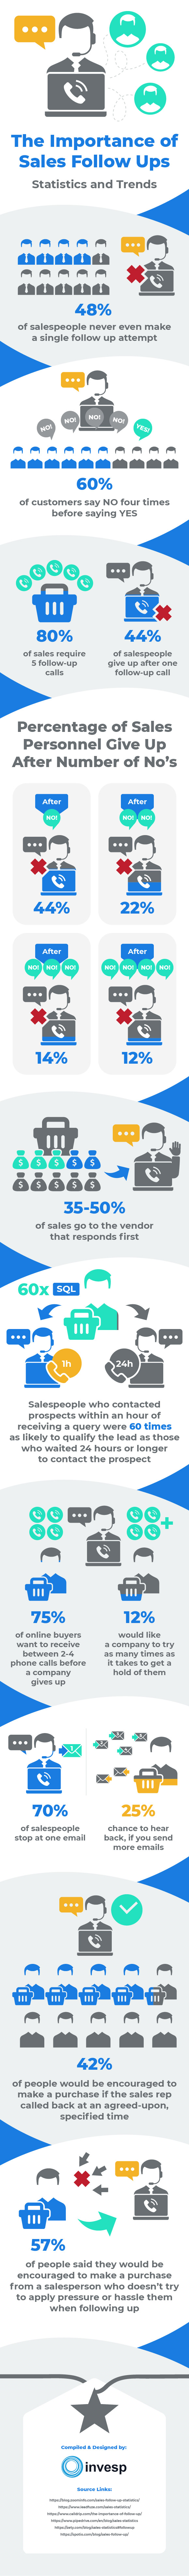 The importance of Sales Follow Ups – Statistics and Trends